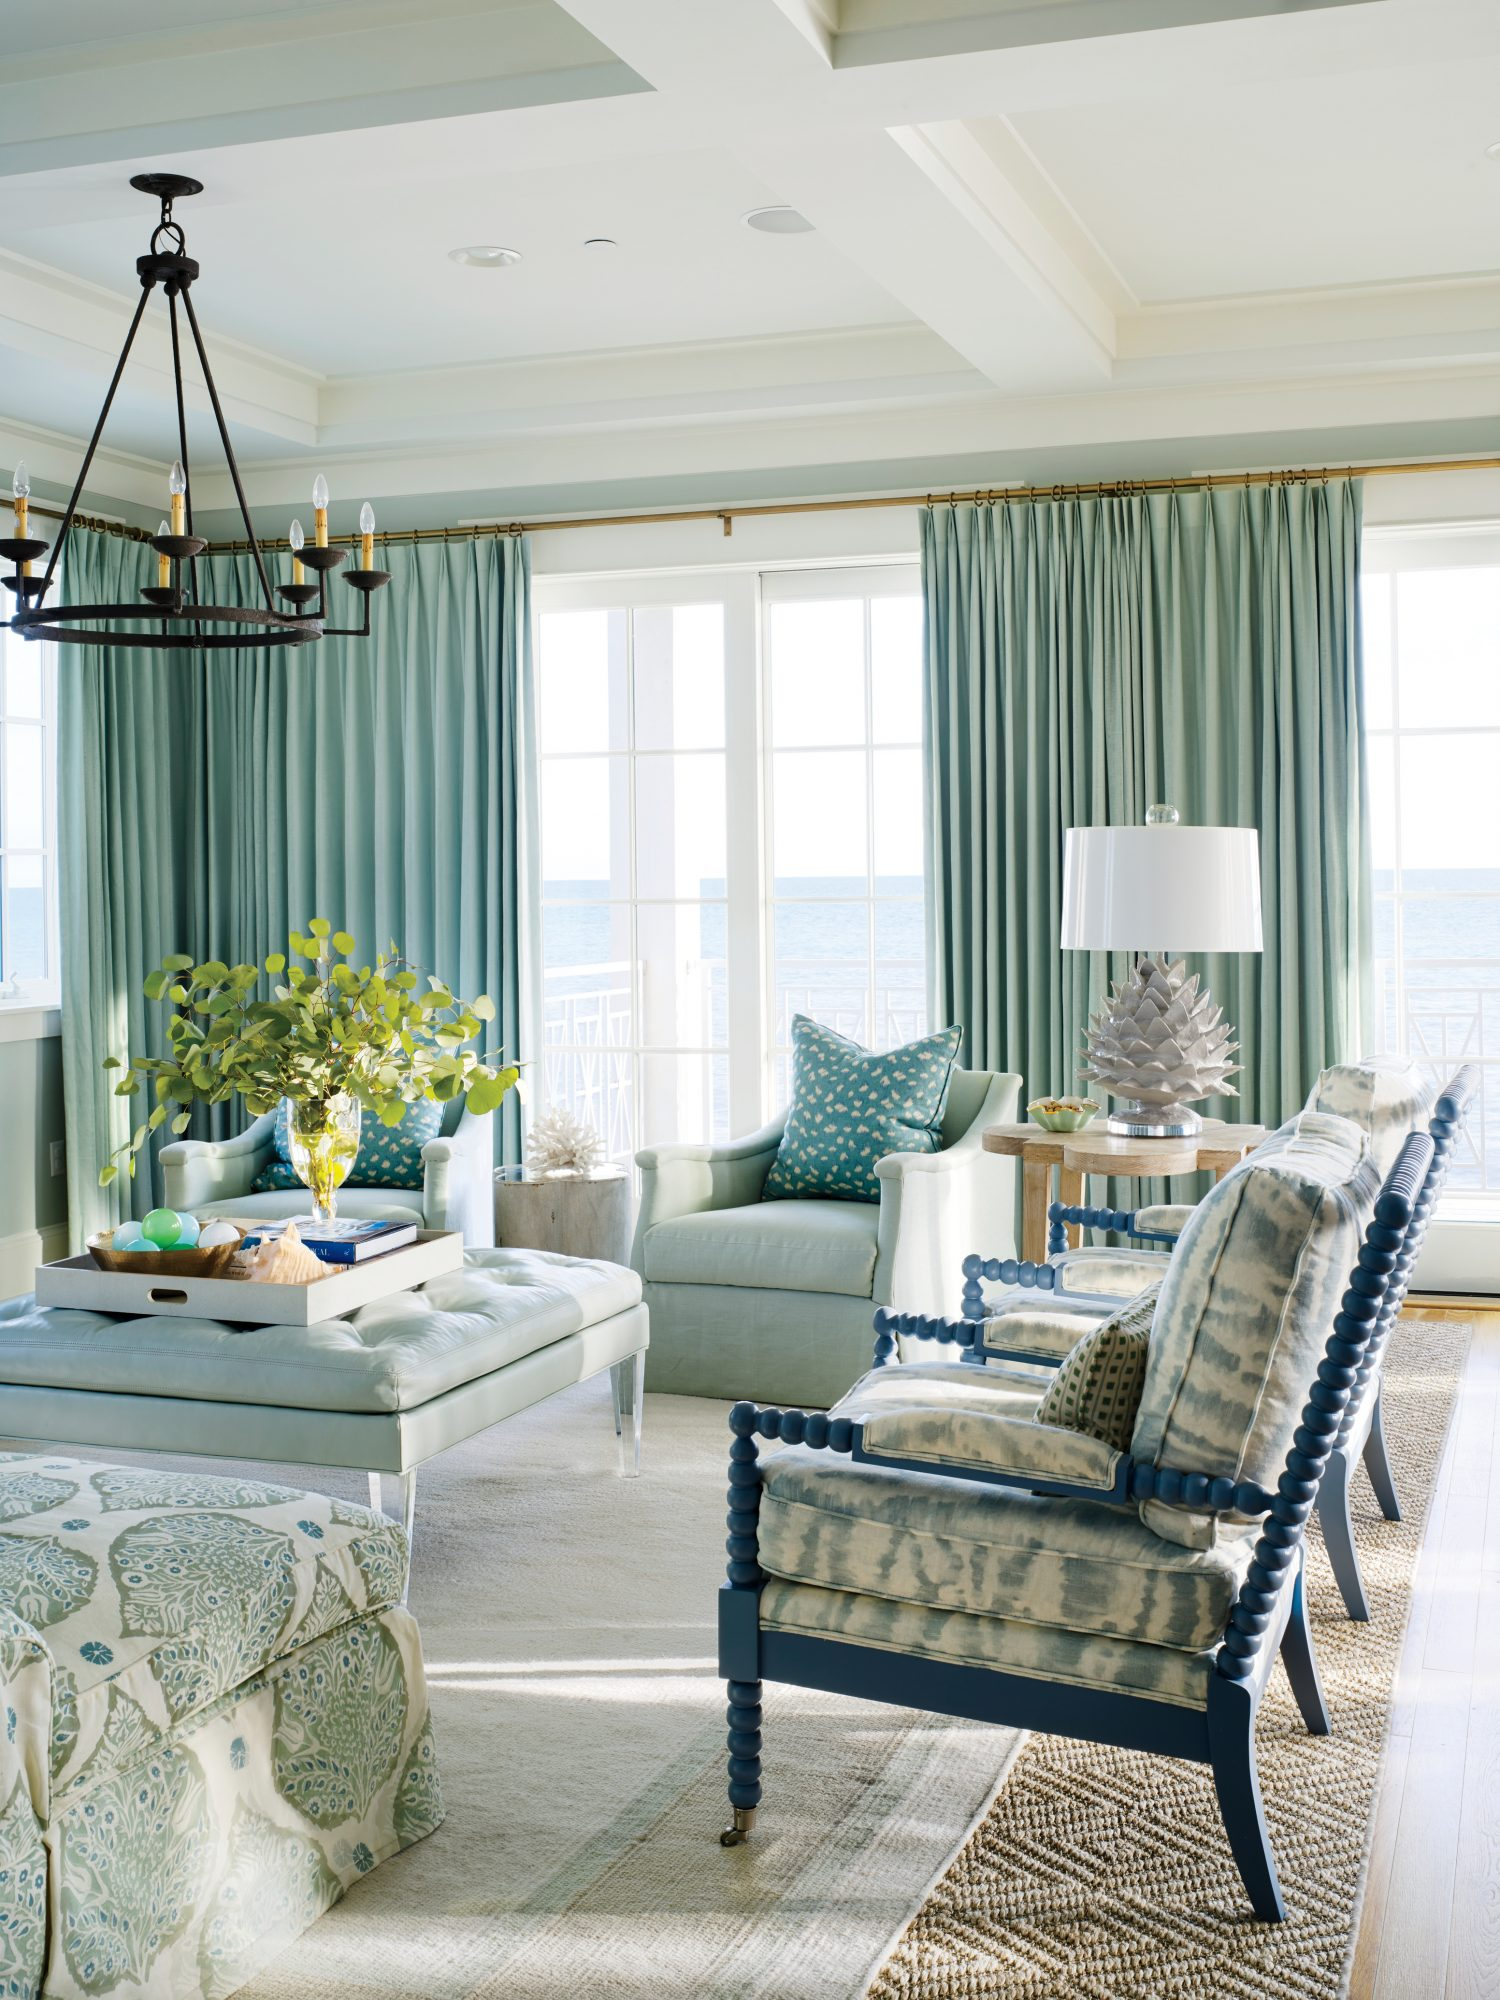 """The views of the Gulf are spectacular here, and the water always seems to be clear,"" says Powell, who went for frosty blue draperies at Elizabeth's suggestion. ""I usually opt for lighter, ivory window treatments, but this blue really draws your eye out t"